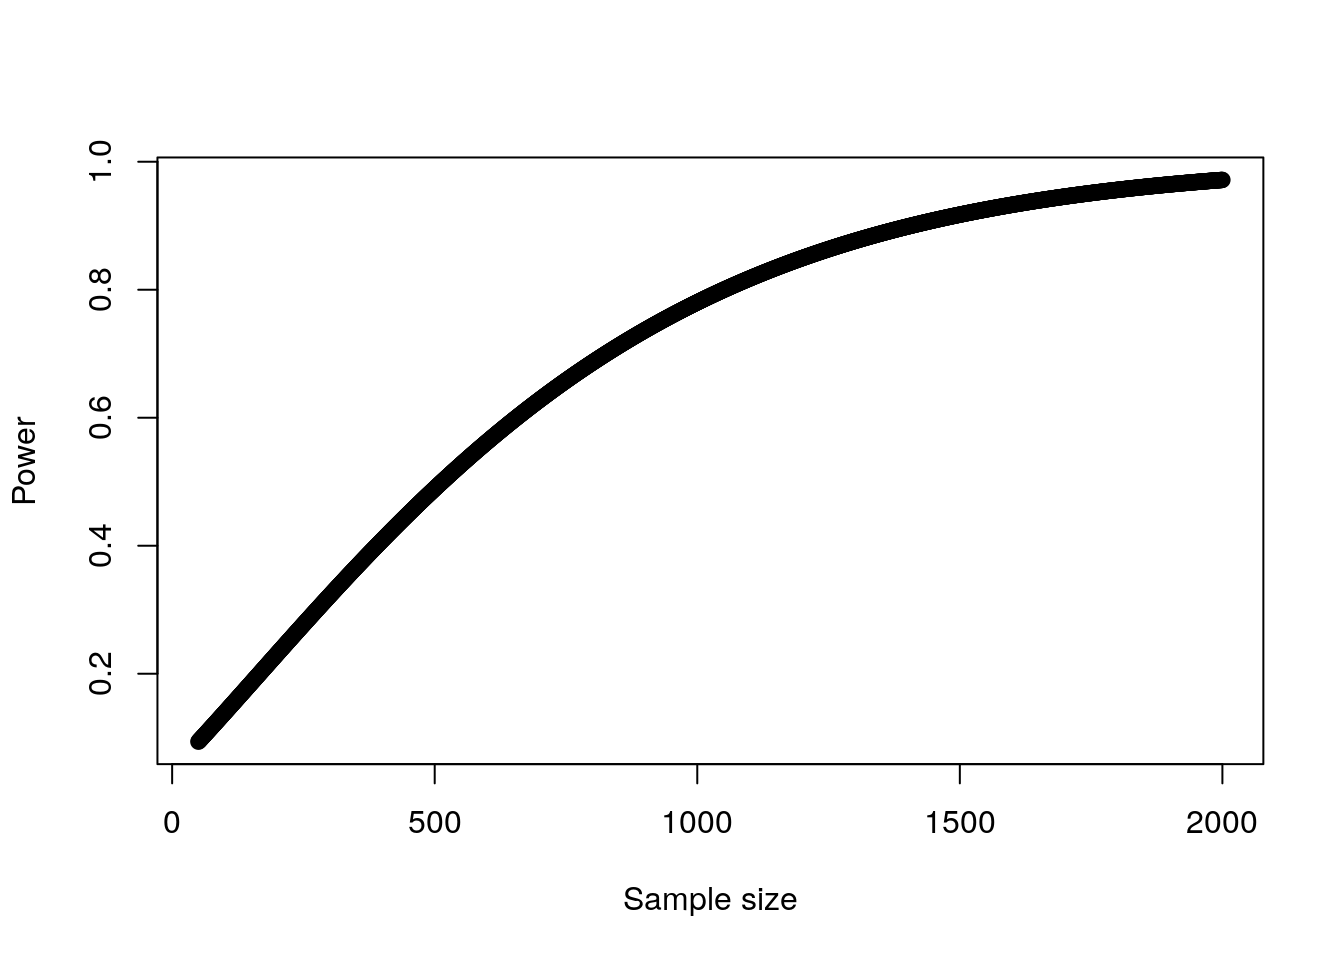 Plot of power against sample size for a single input variable in logistic regression